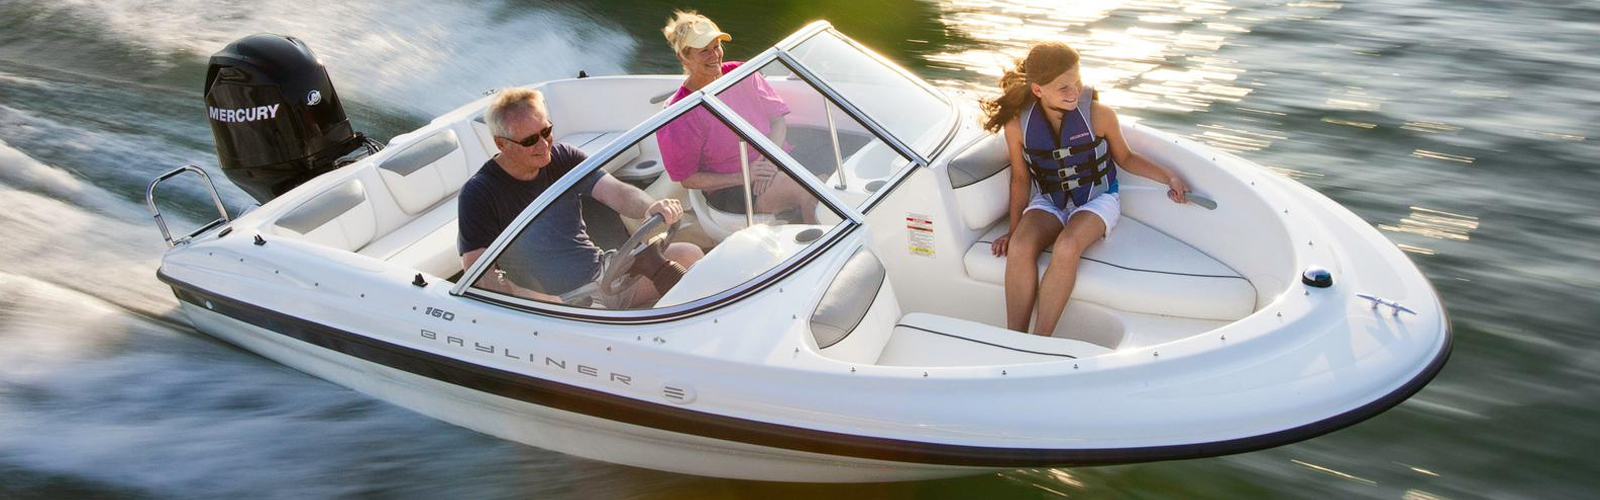 Boat rental and service